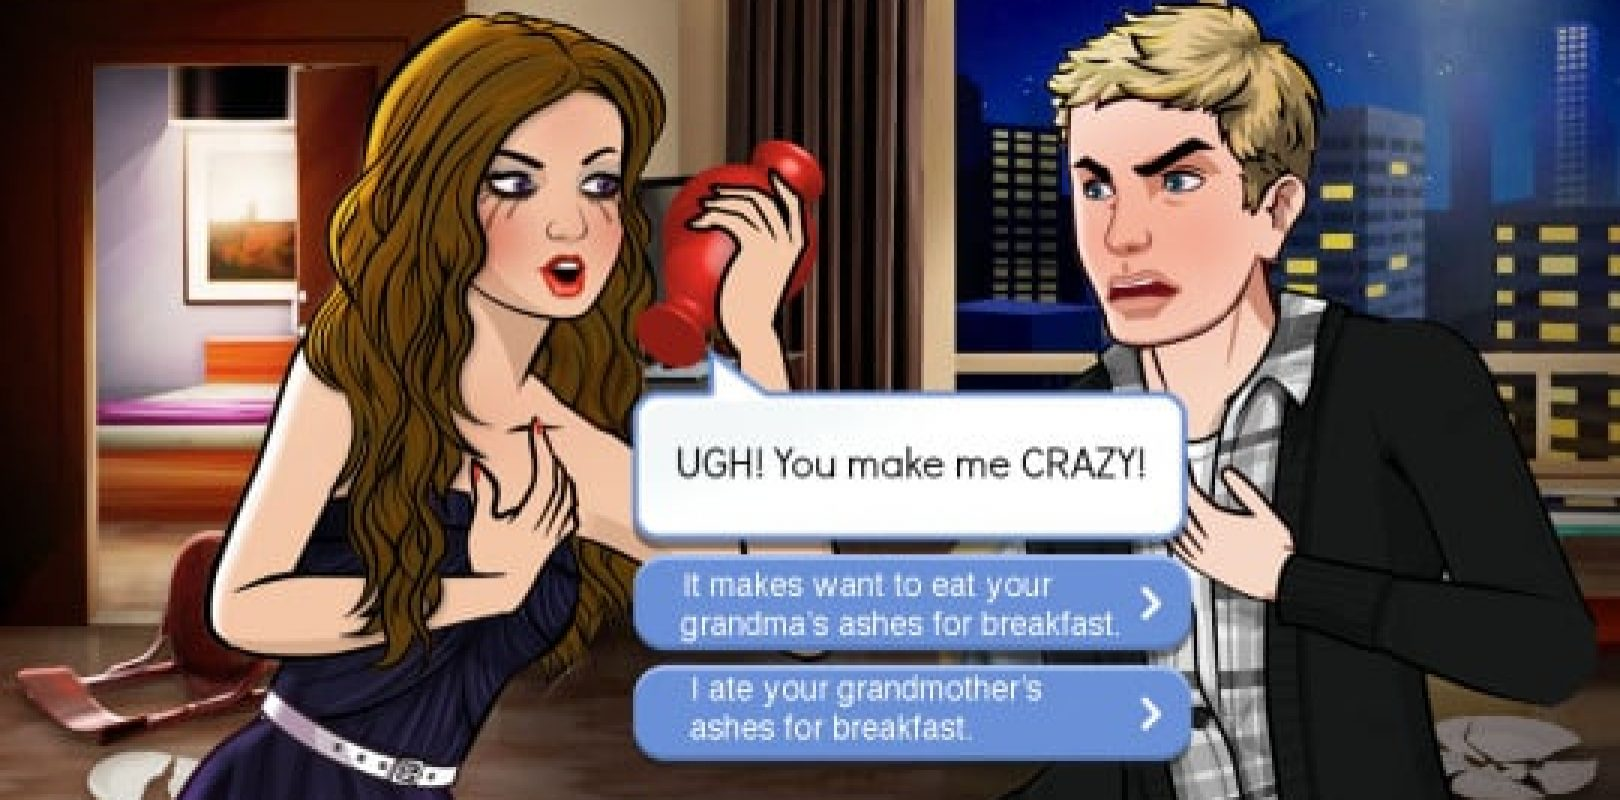 flirting games romance games free download: